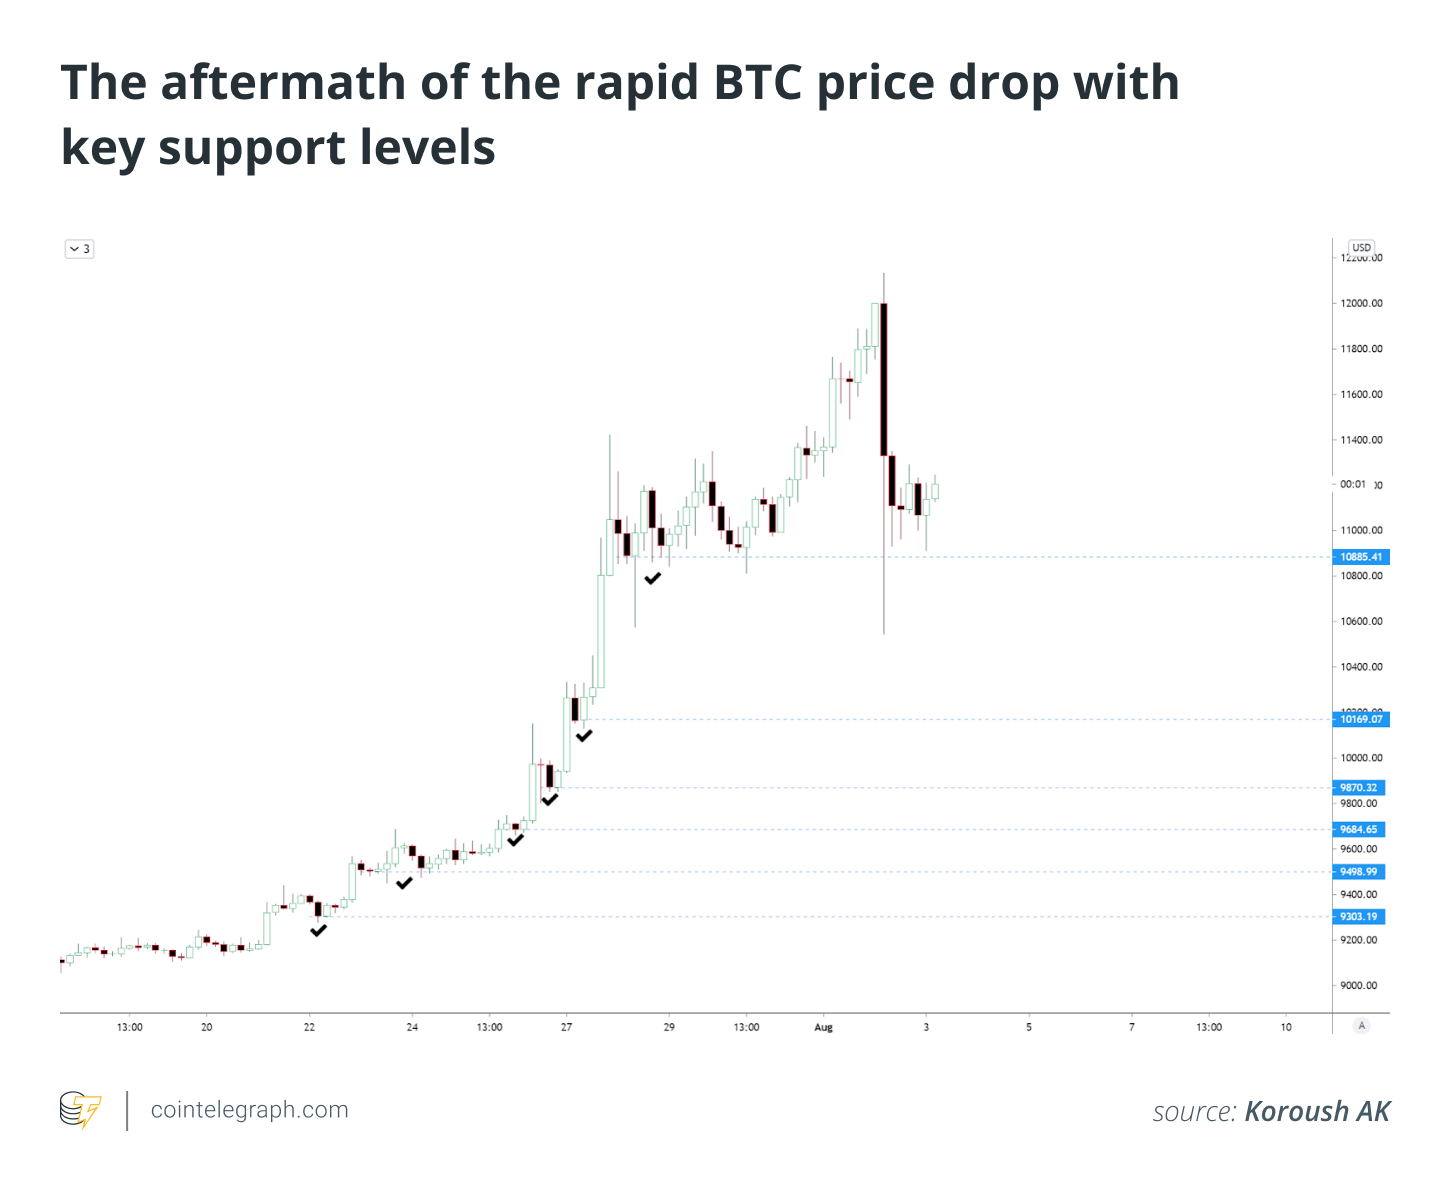 The aftermath of the rapid BTC price drop with key support levels